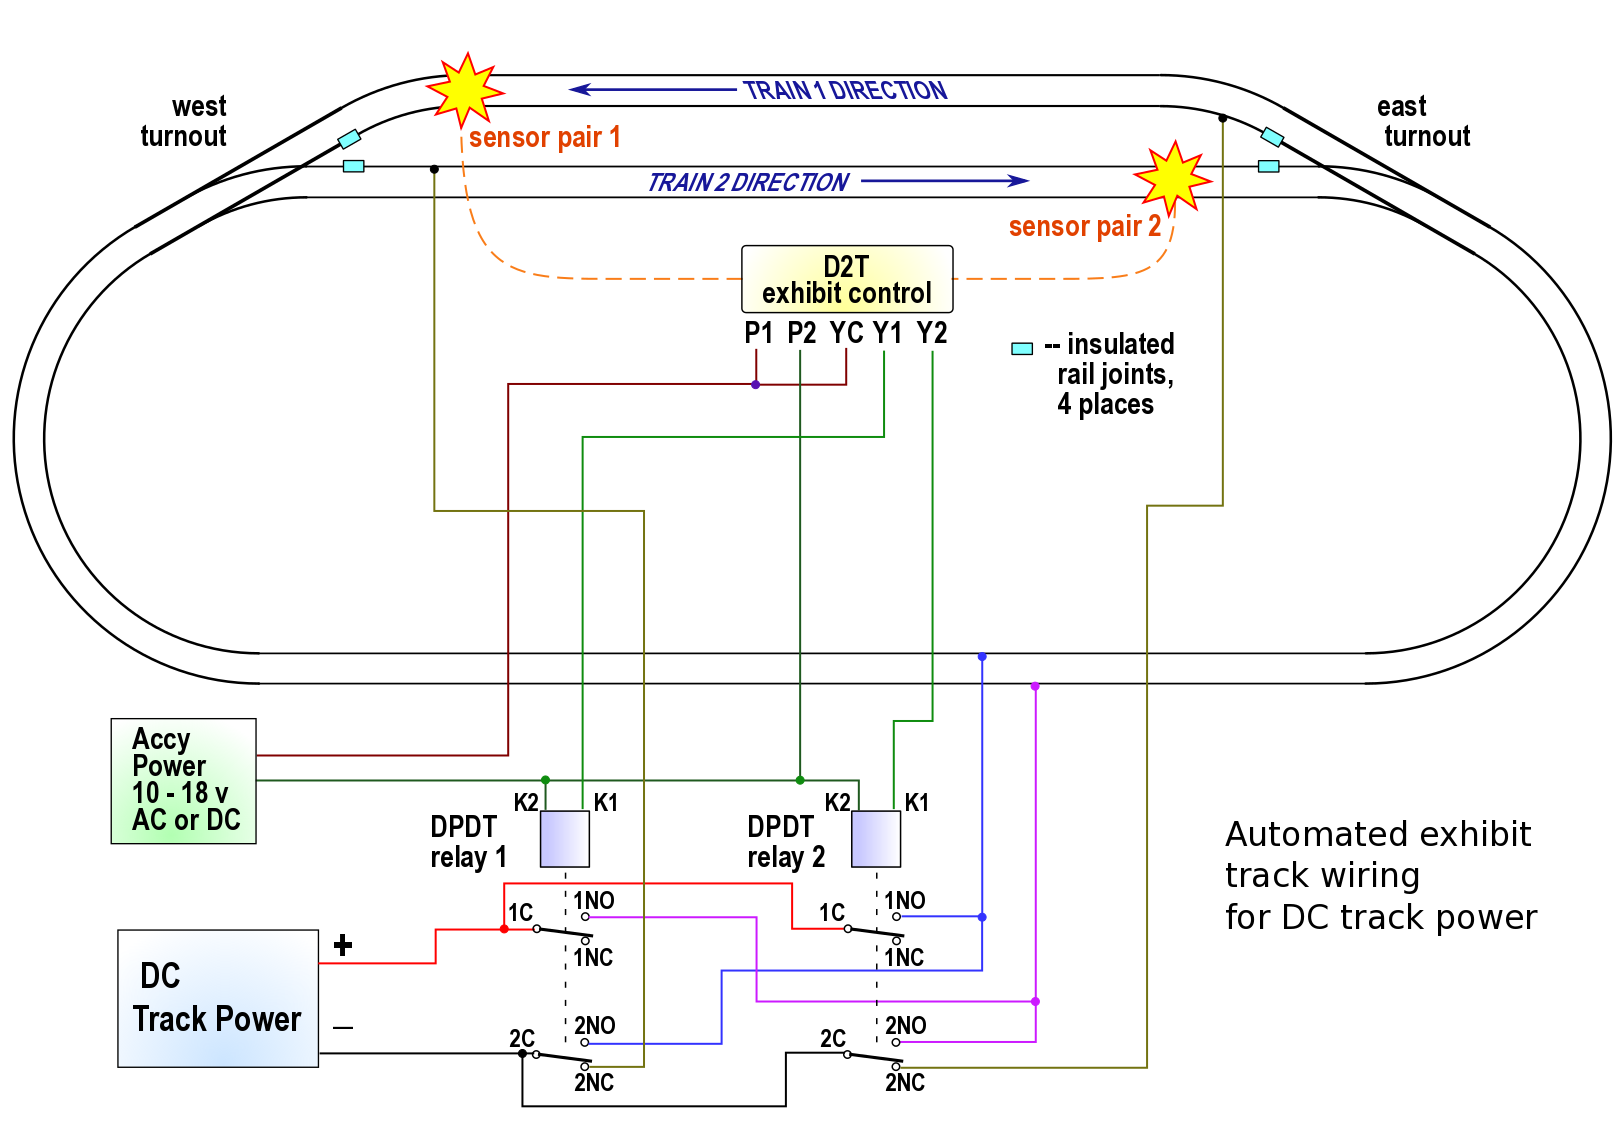 hight resolution of dpdt switch wiring diagram for wye